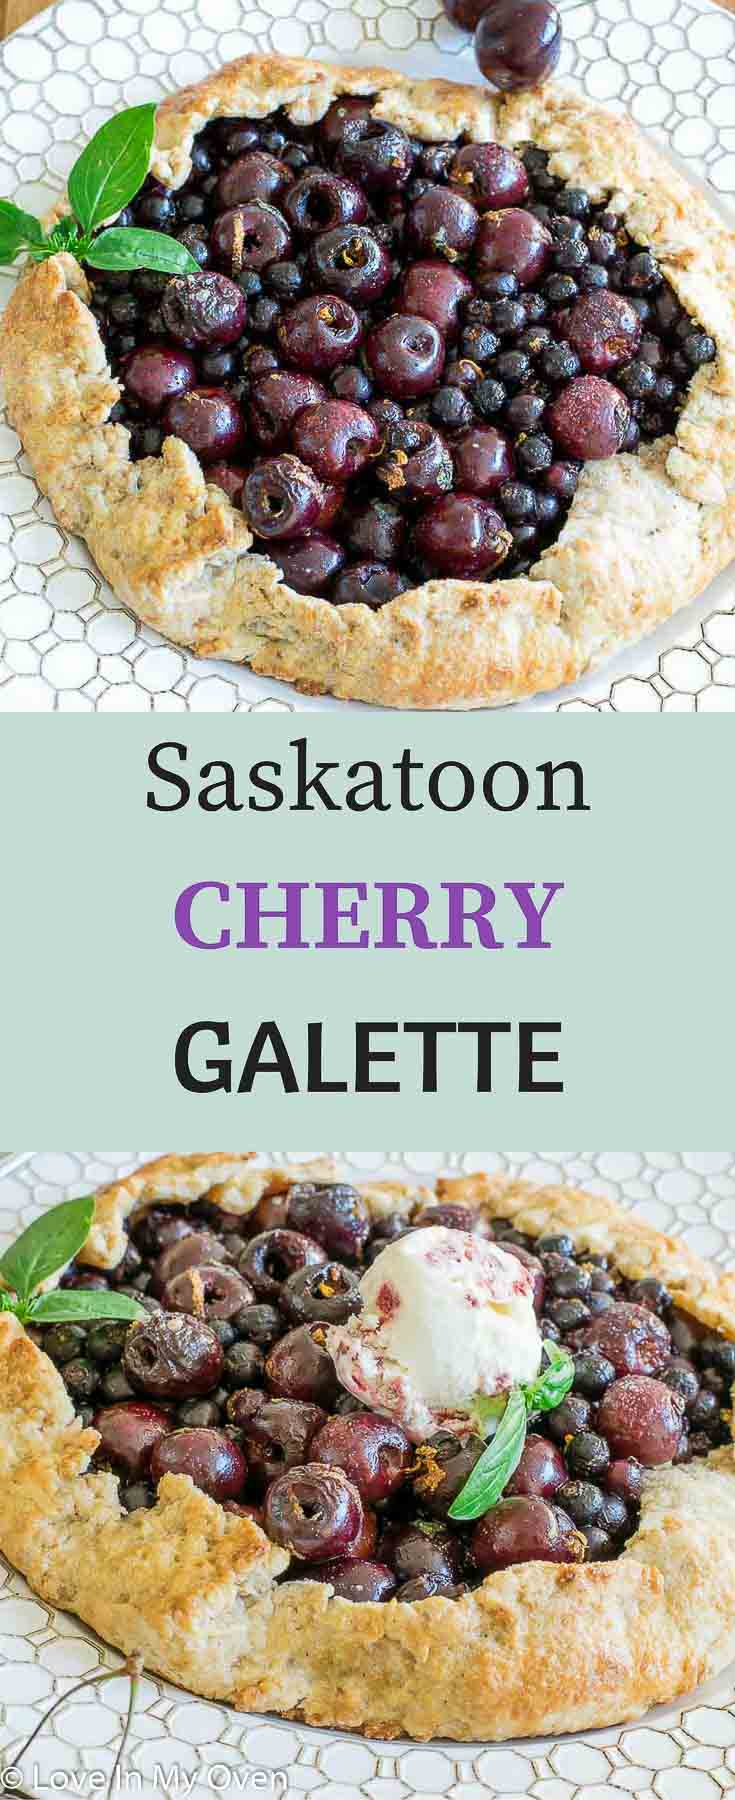 Sweet saskatoons and fresh cherries are combined with fresh basil and lemon zest in this deliciously lazy shortcut on pie!